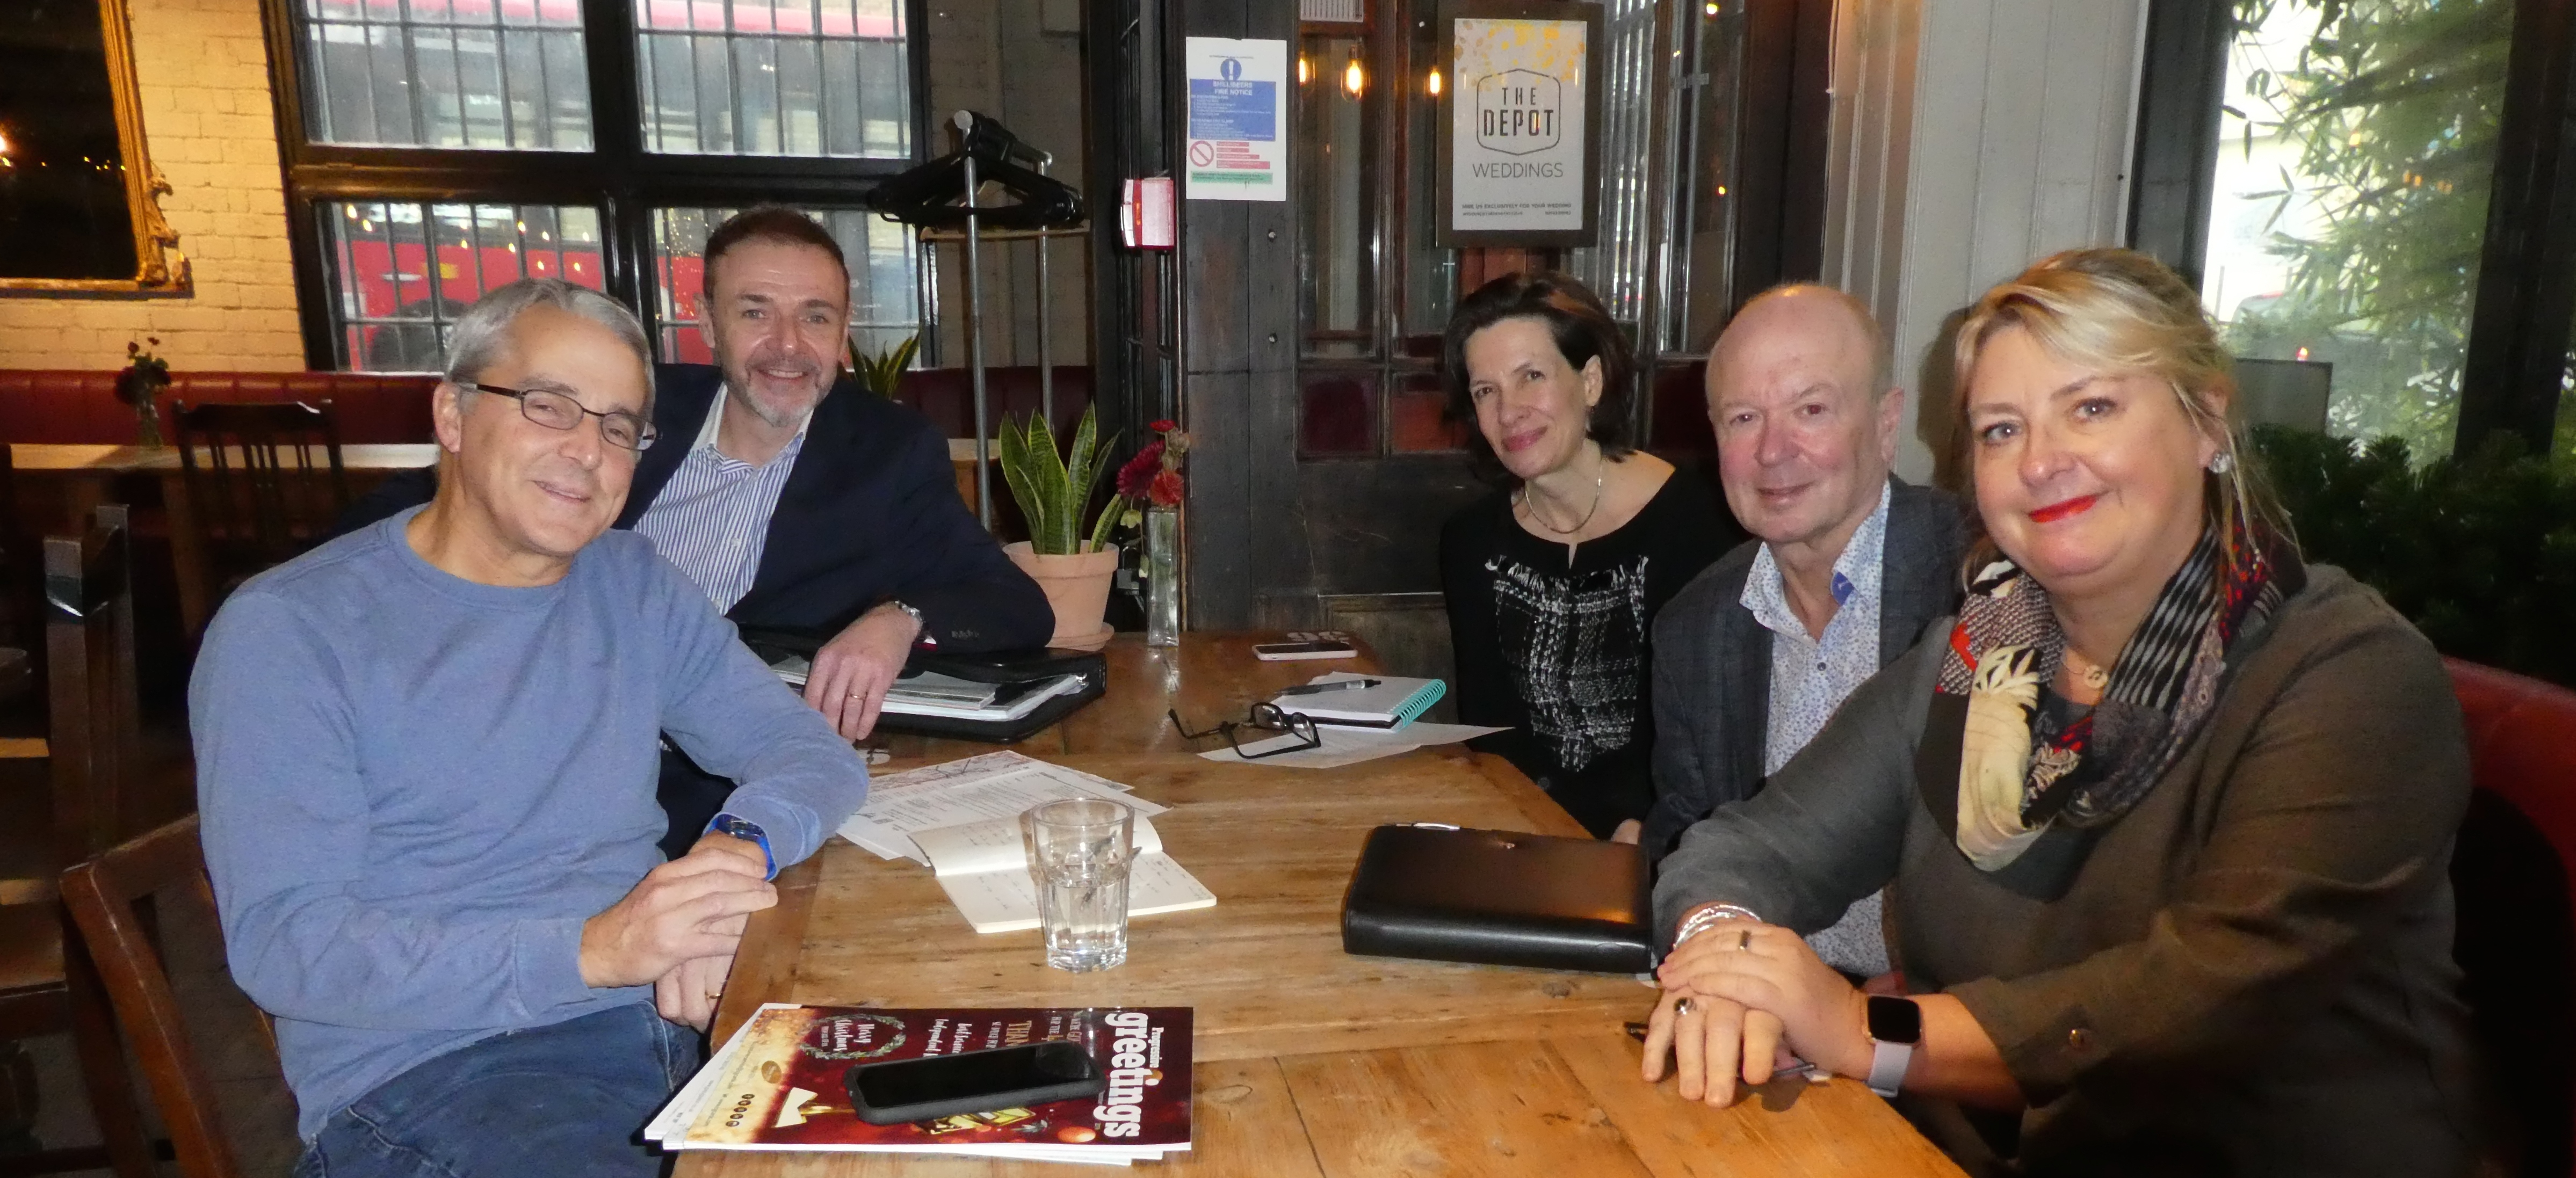 Above: George White (front left) met up with the UK GCA's Amanda Fergusson (back right), council member Chris Bryan (of Second Nature) and PG's Jakki Brown last week to exchange how the two trade associations can better work together.